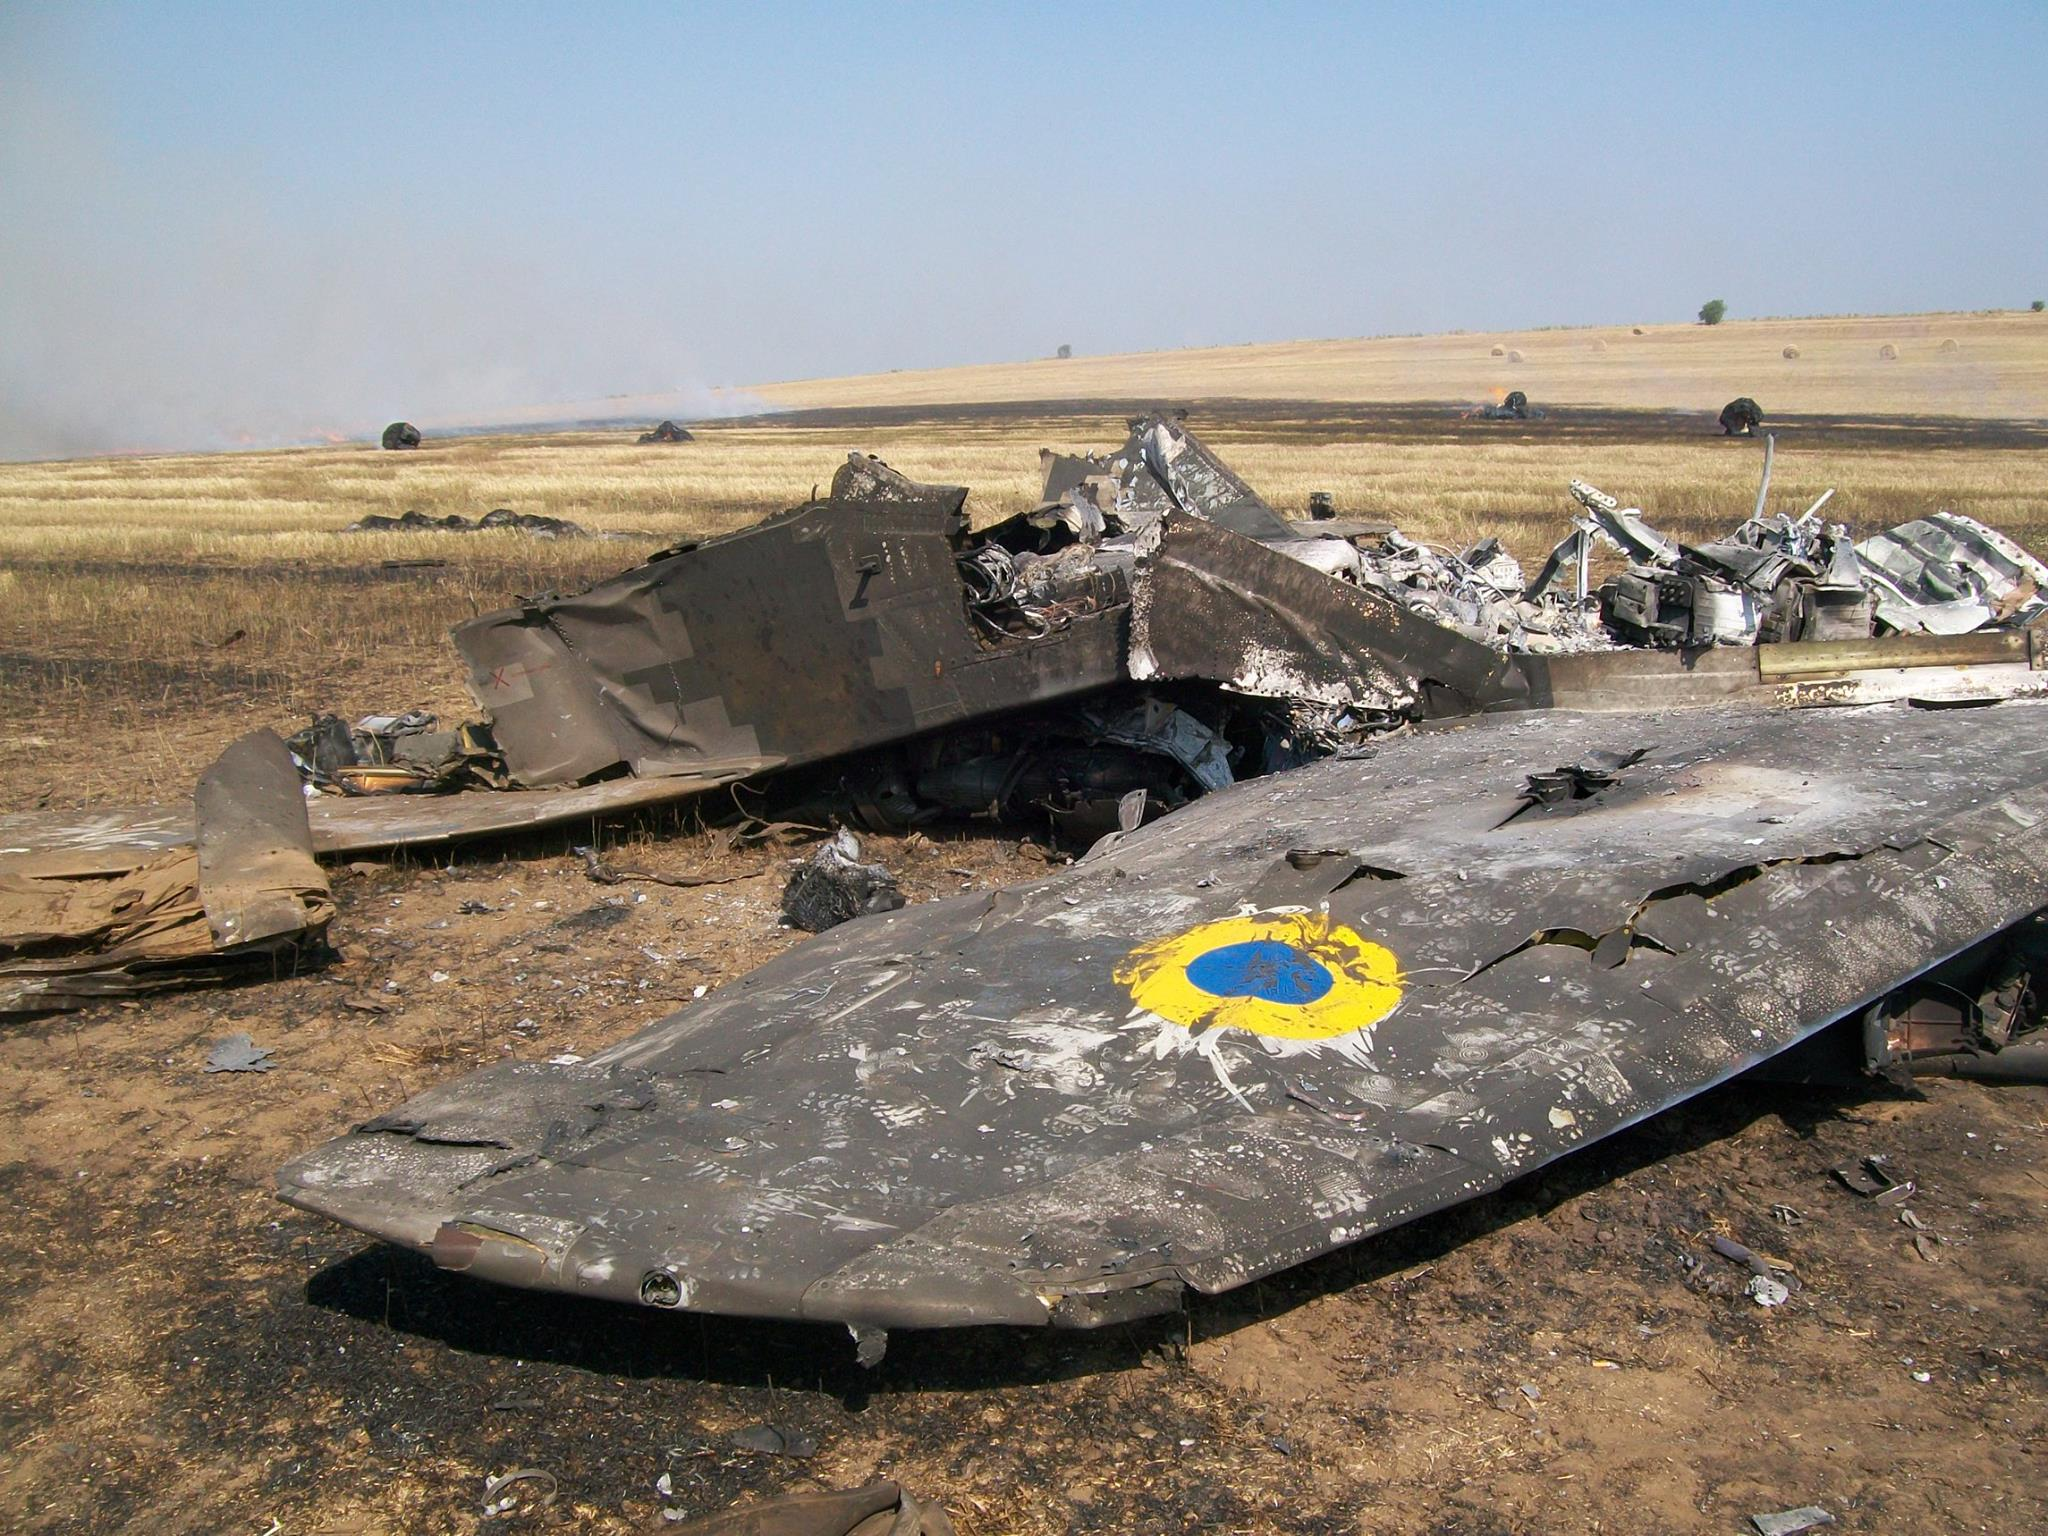 Ukrainian Air Force Has Lost 18 Combat Aircraft in Fighting With Rebels Since April 2014